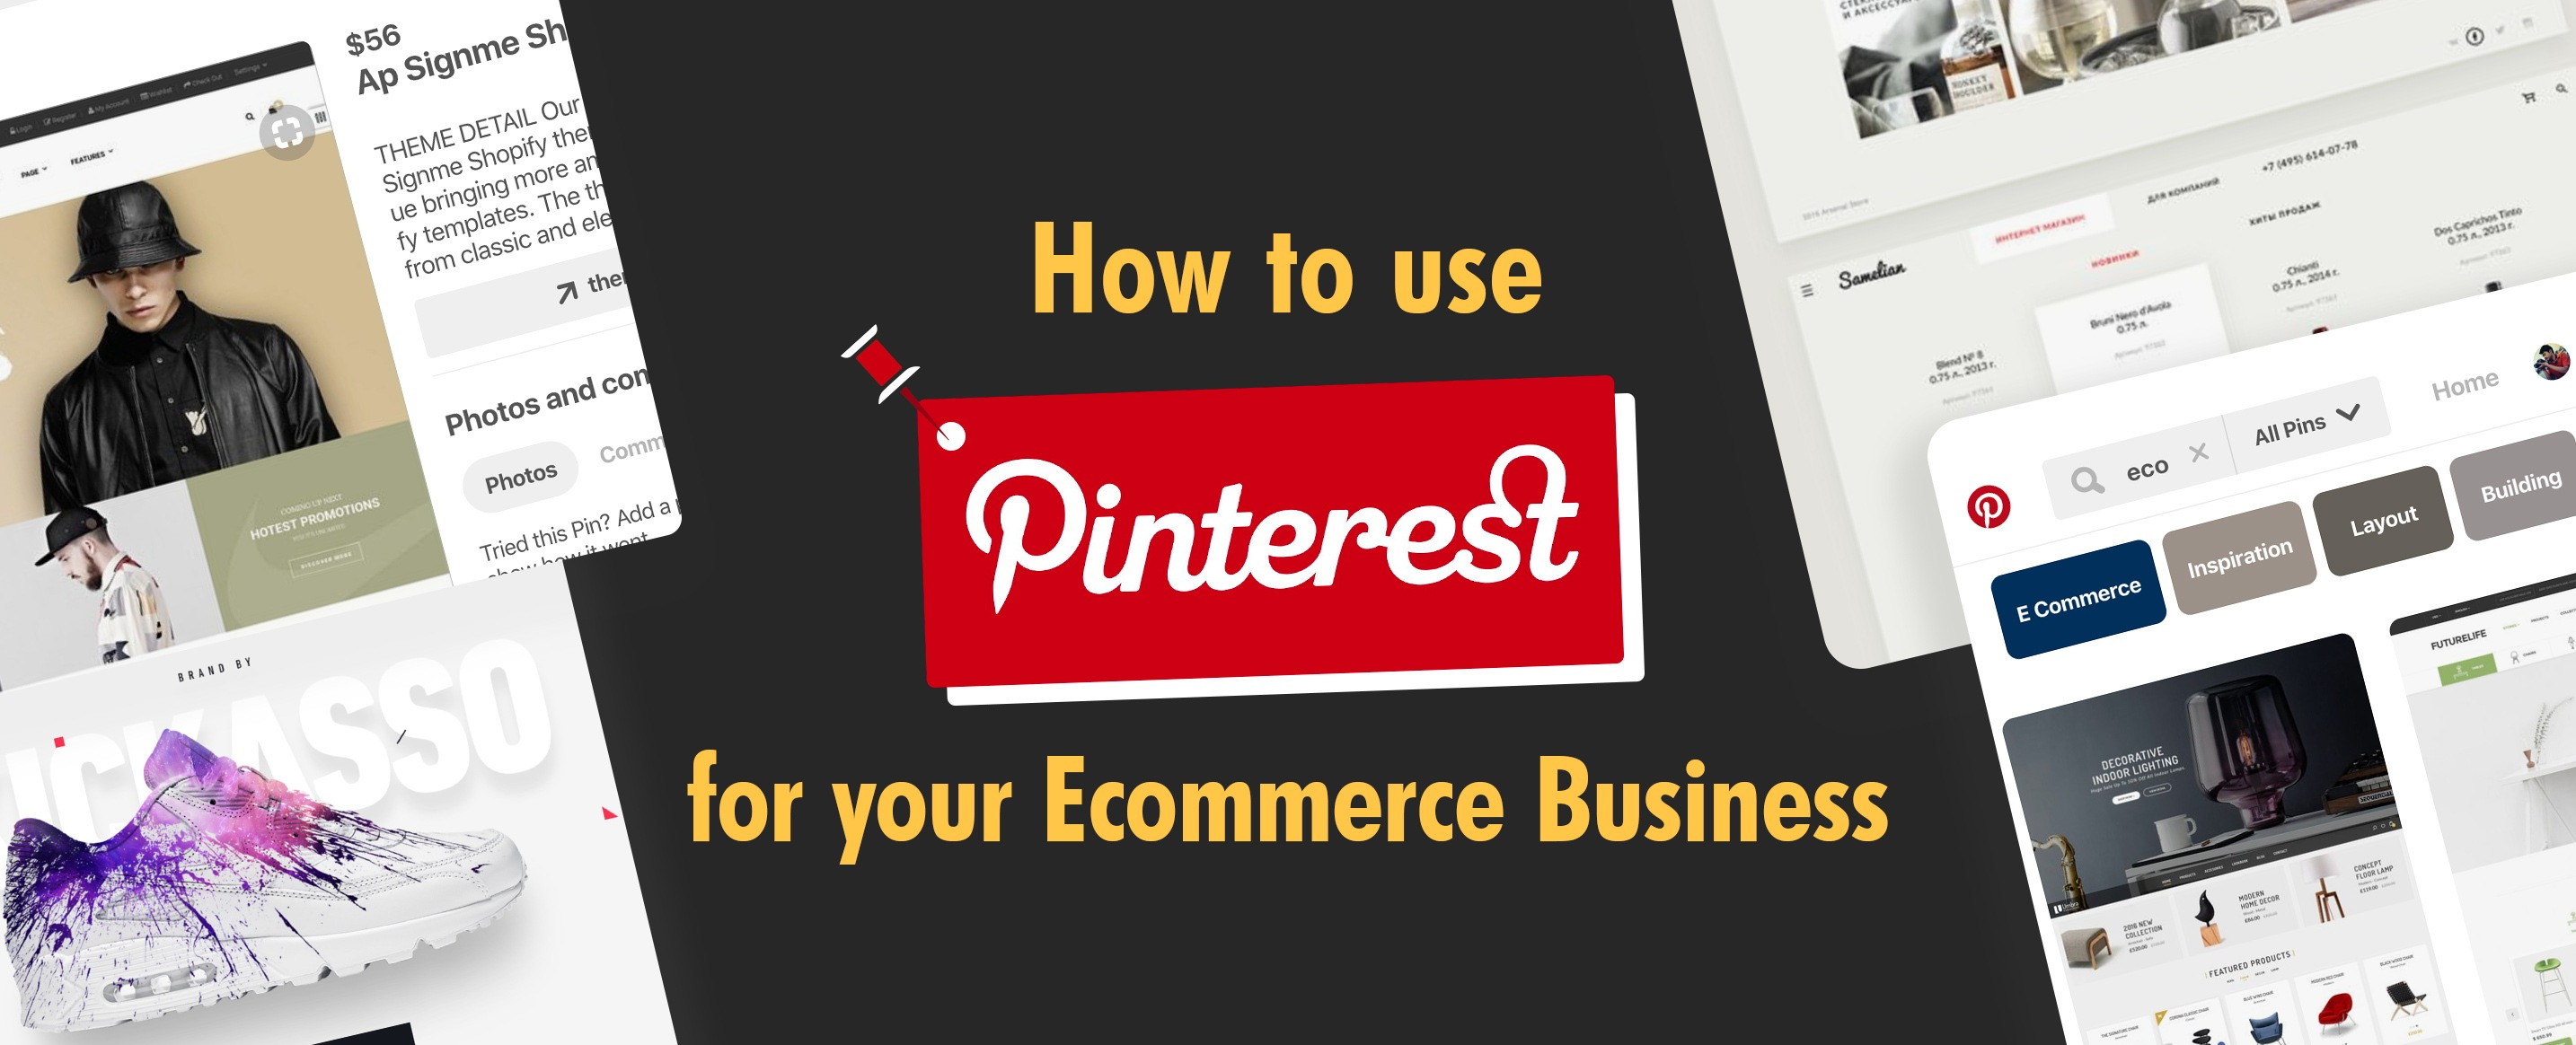 How-to-use-Pinterest-for-your-business